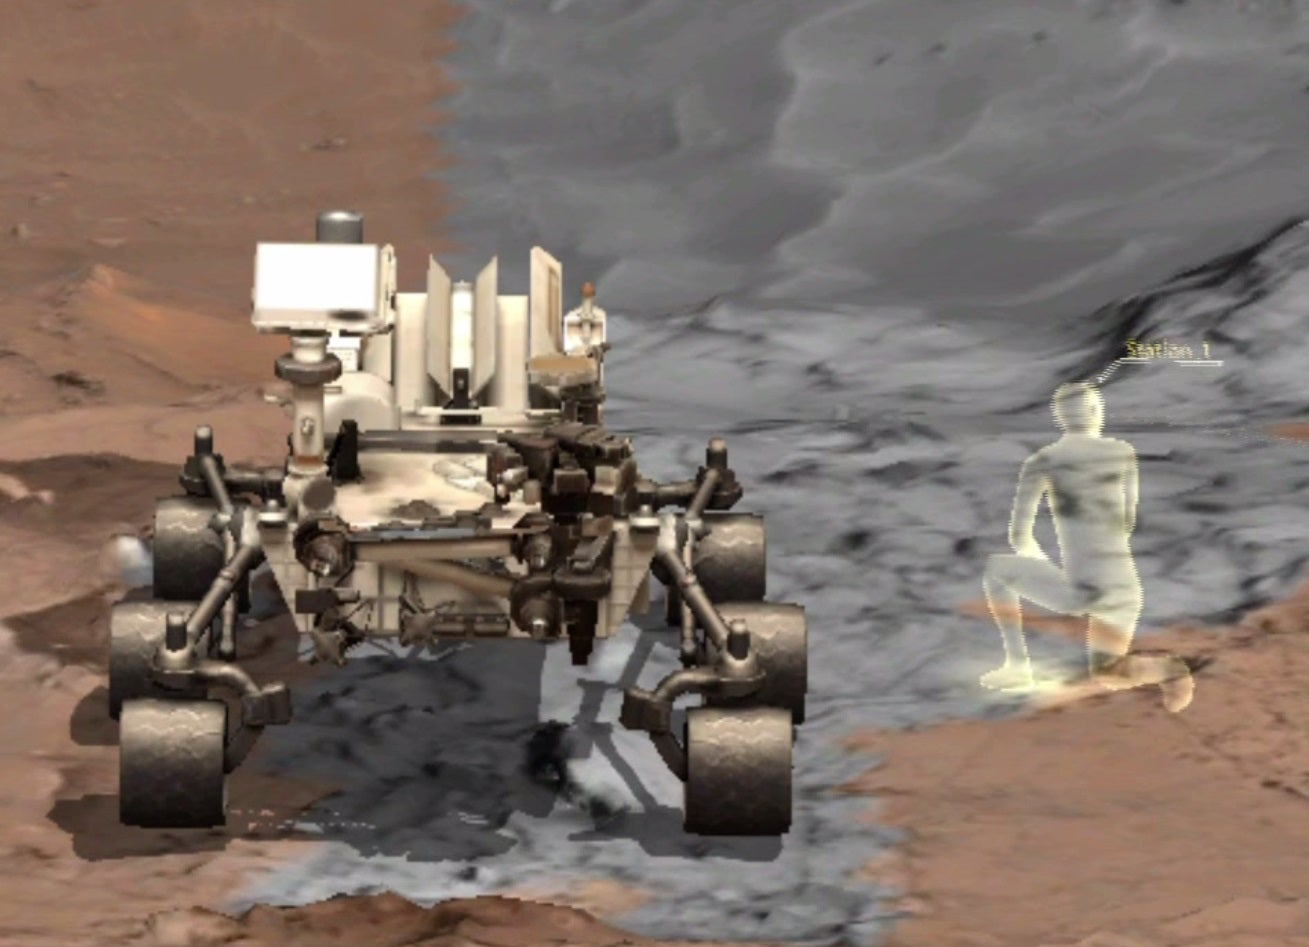 We Took A Virtual Walk On The Martian Surface